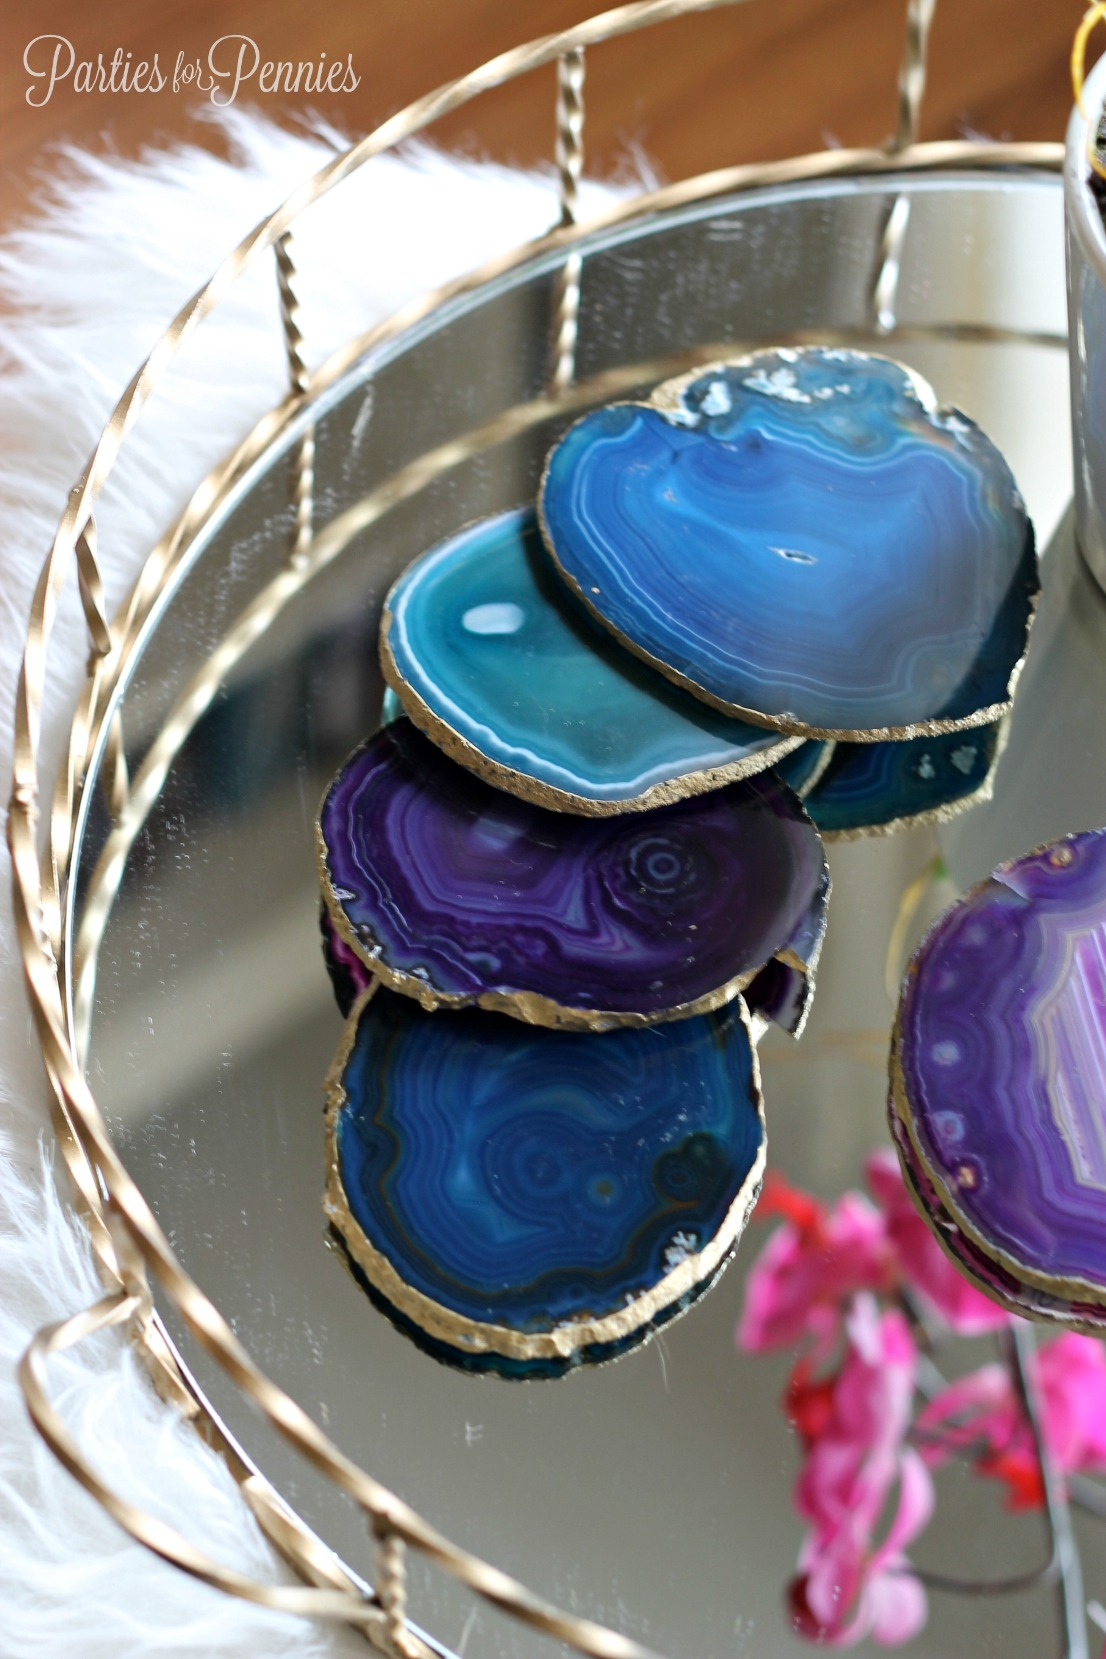 DIY Agate Stone Coasters | PartiesforPennies.com | #diy #coasters #agatestone #gold #gift